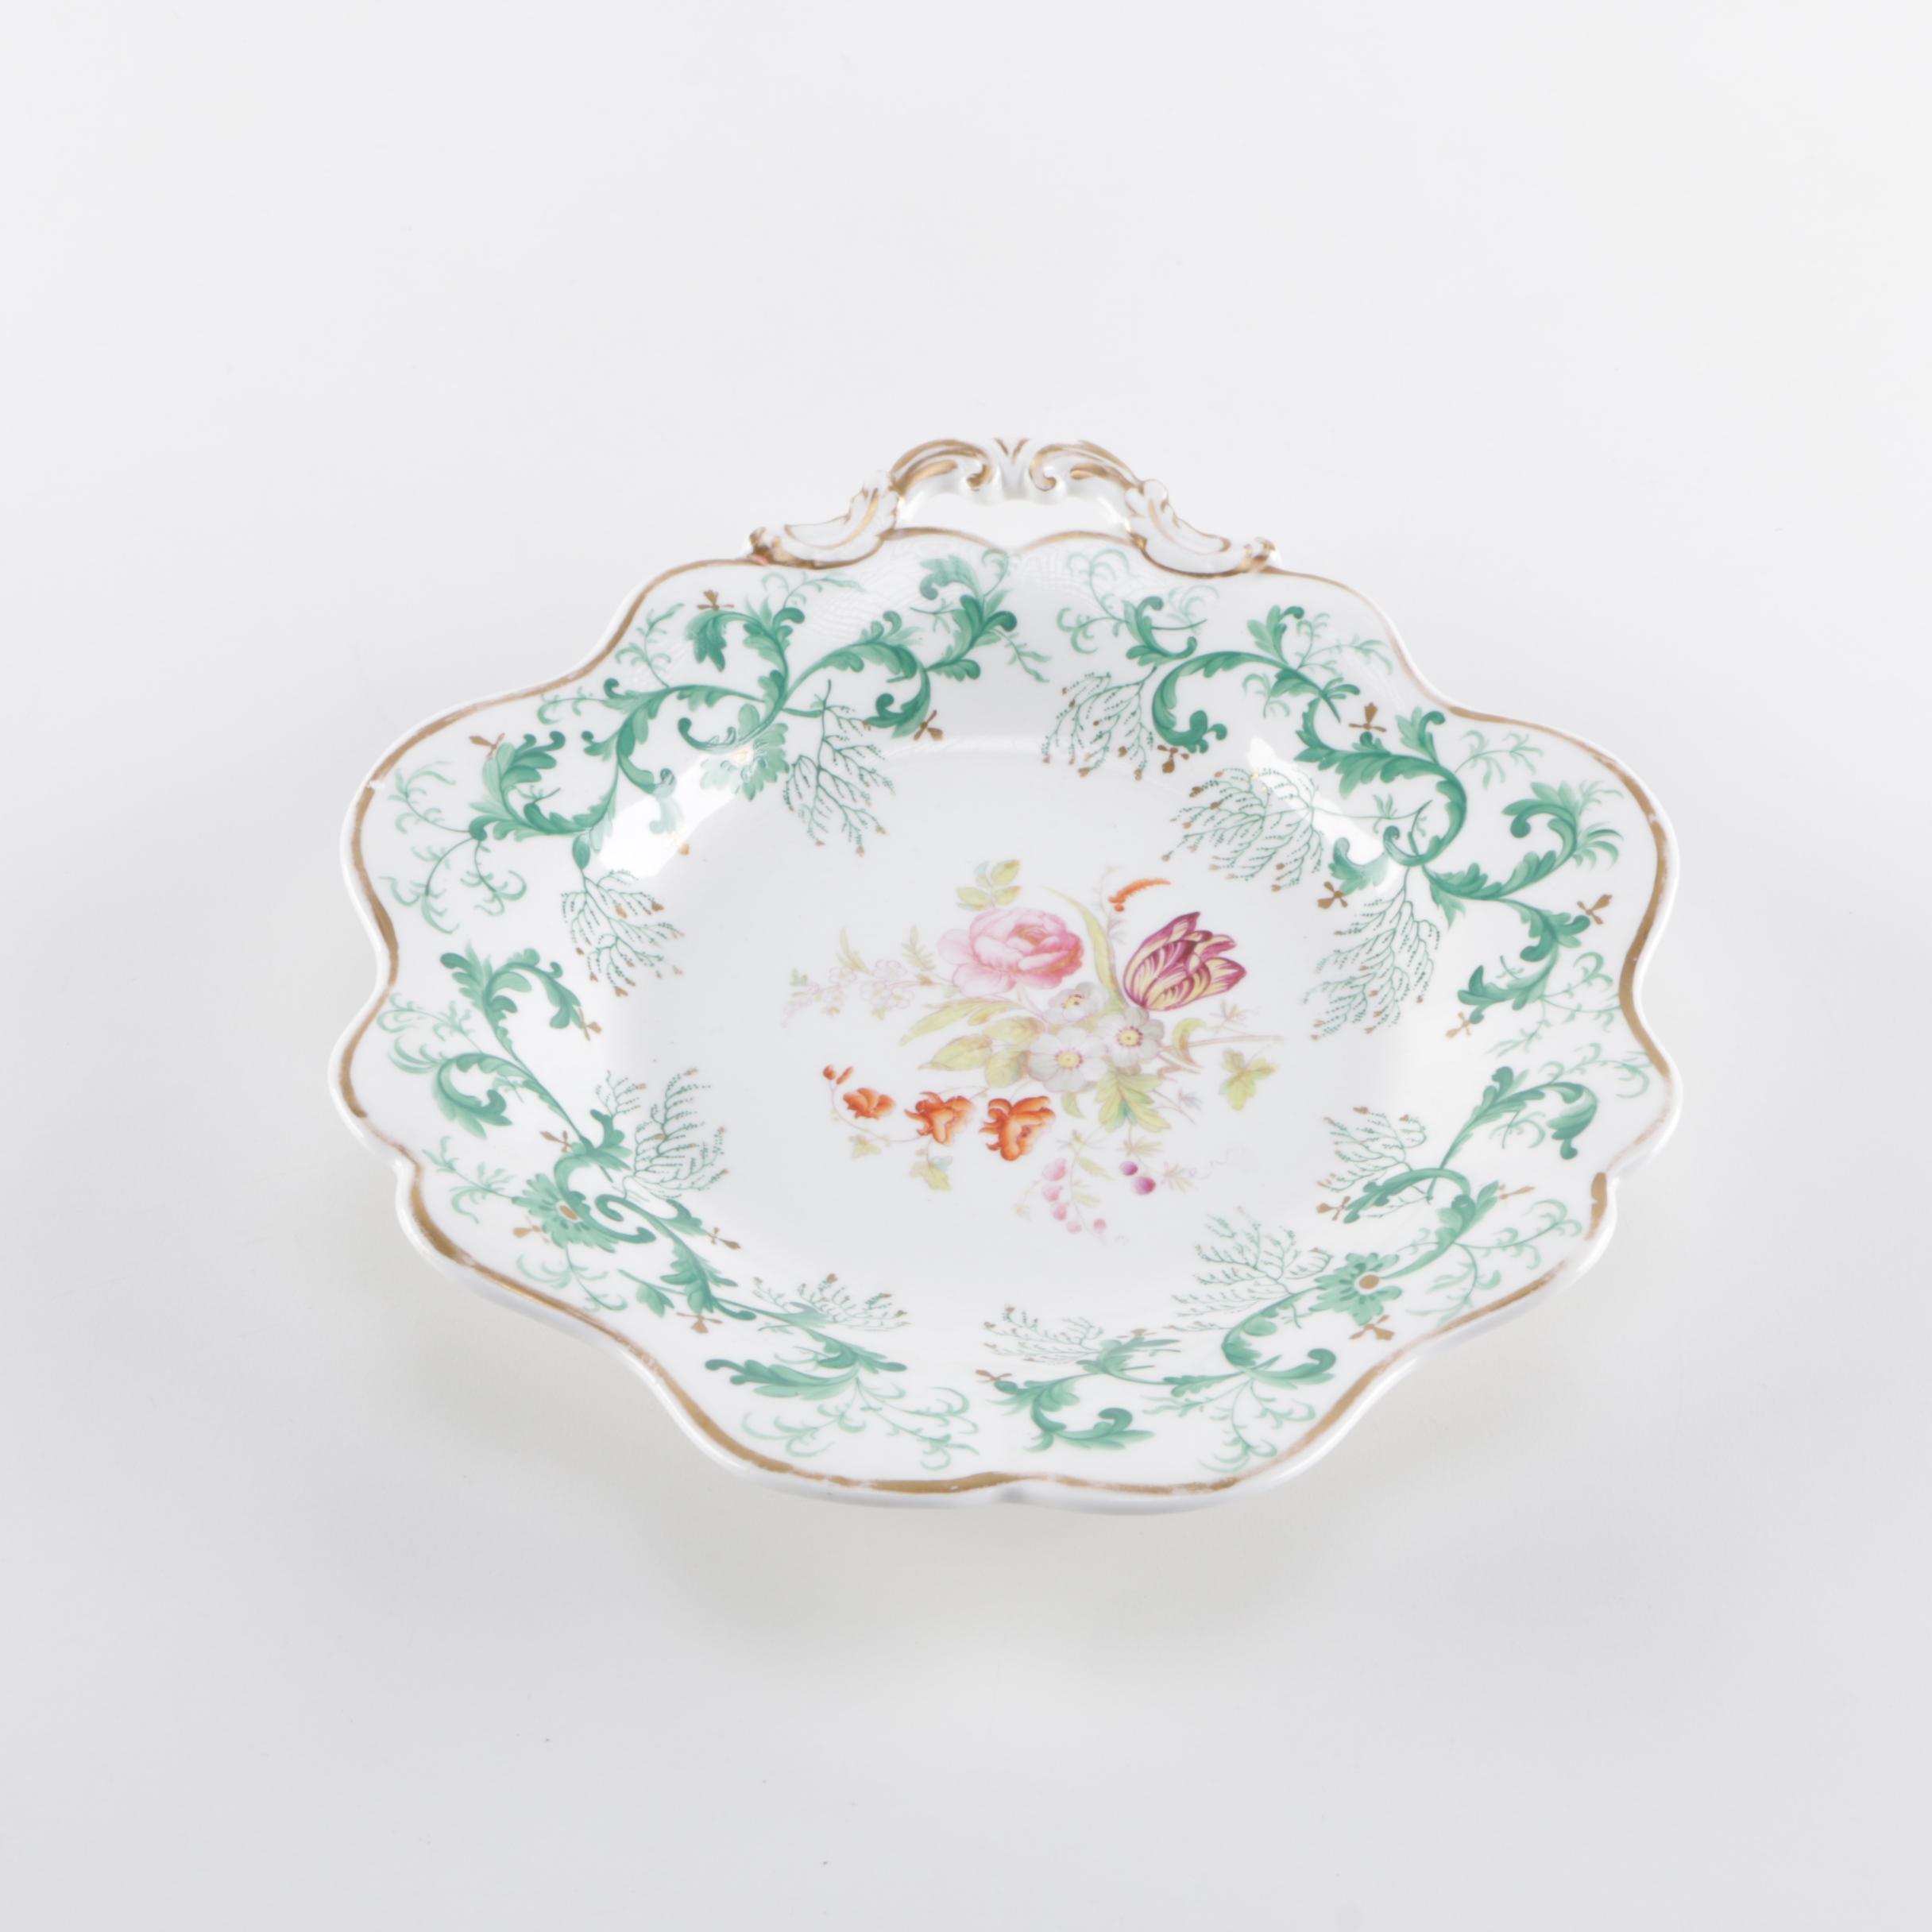 Decorative Hand Painted China Plate